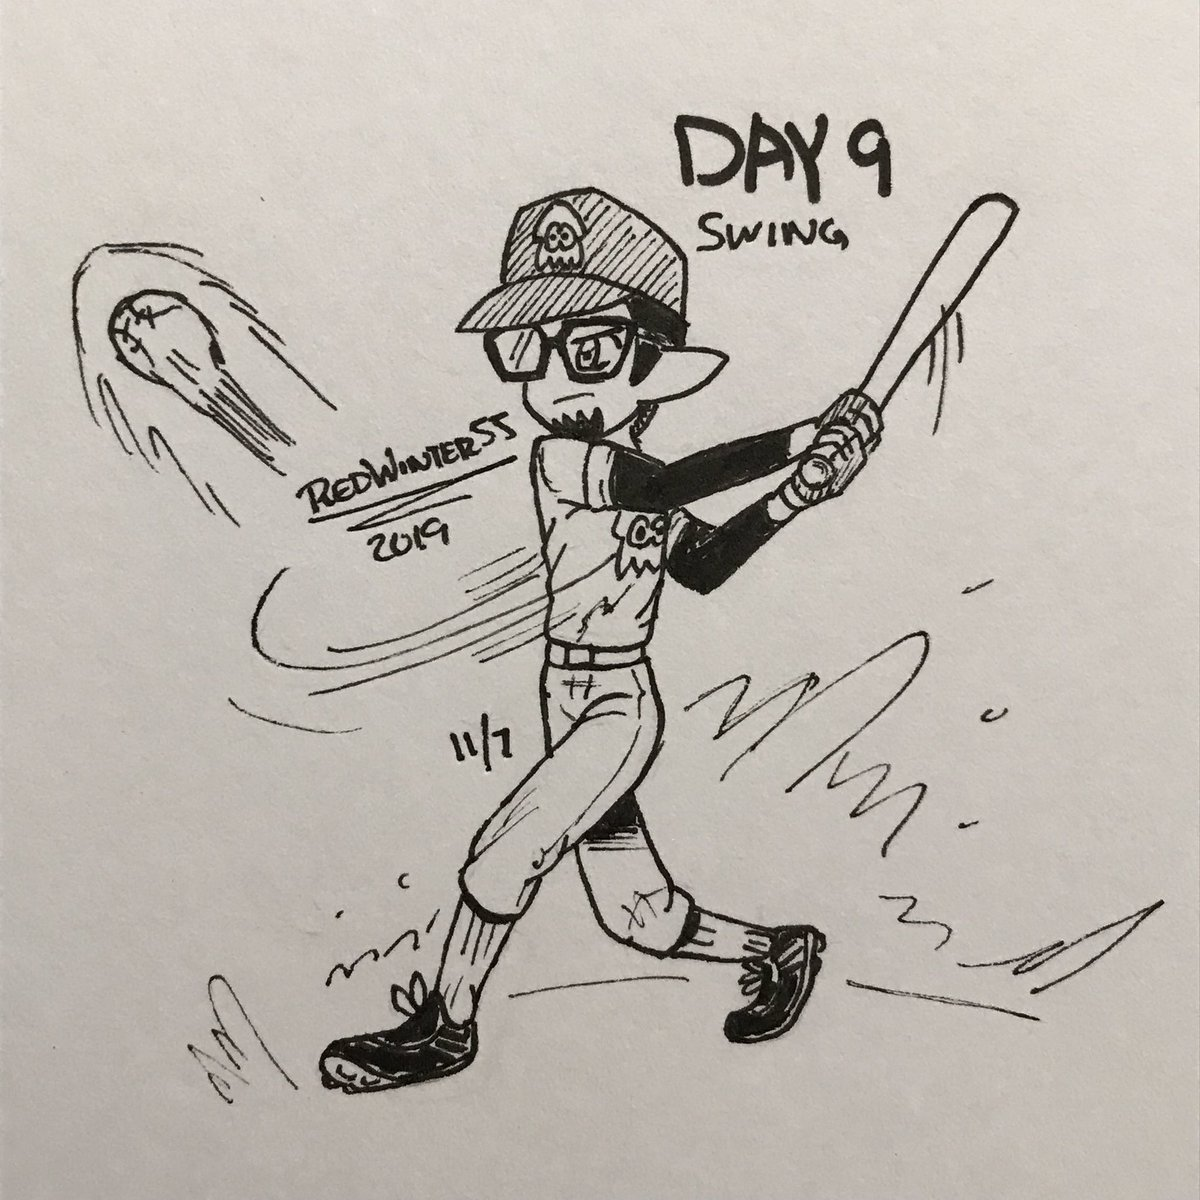 Inktober 2019 Day 9 -Swing. Me playing baseball. I played baseball when I was in middle school. #Splatoon #Inktober #Inktober2019 #InktoberDay9